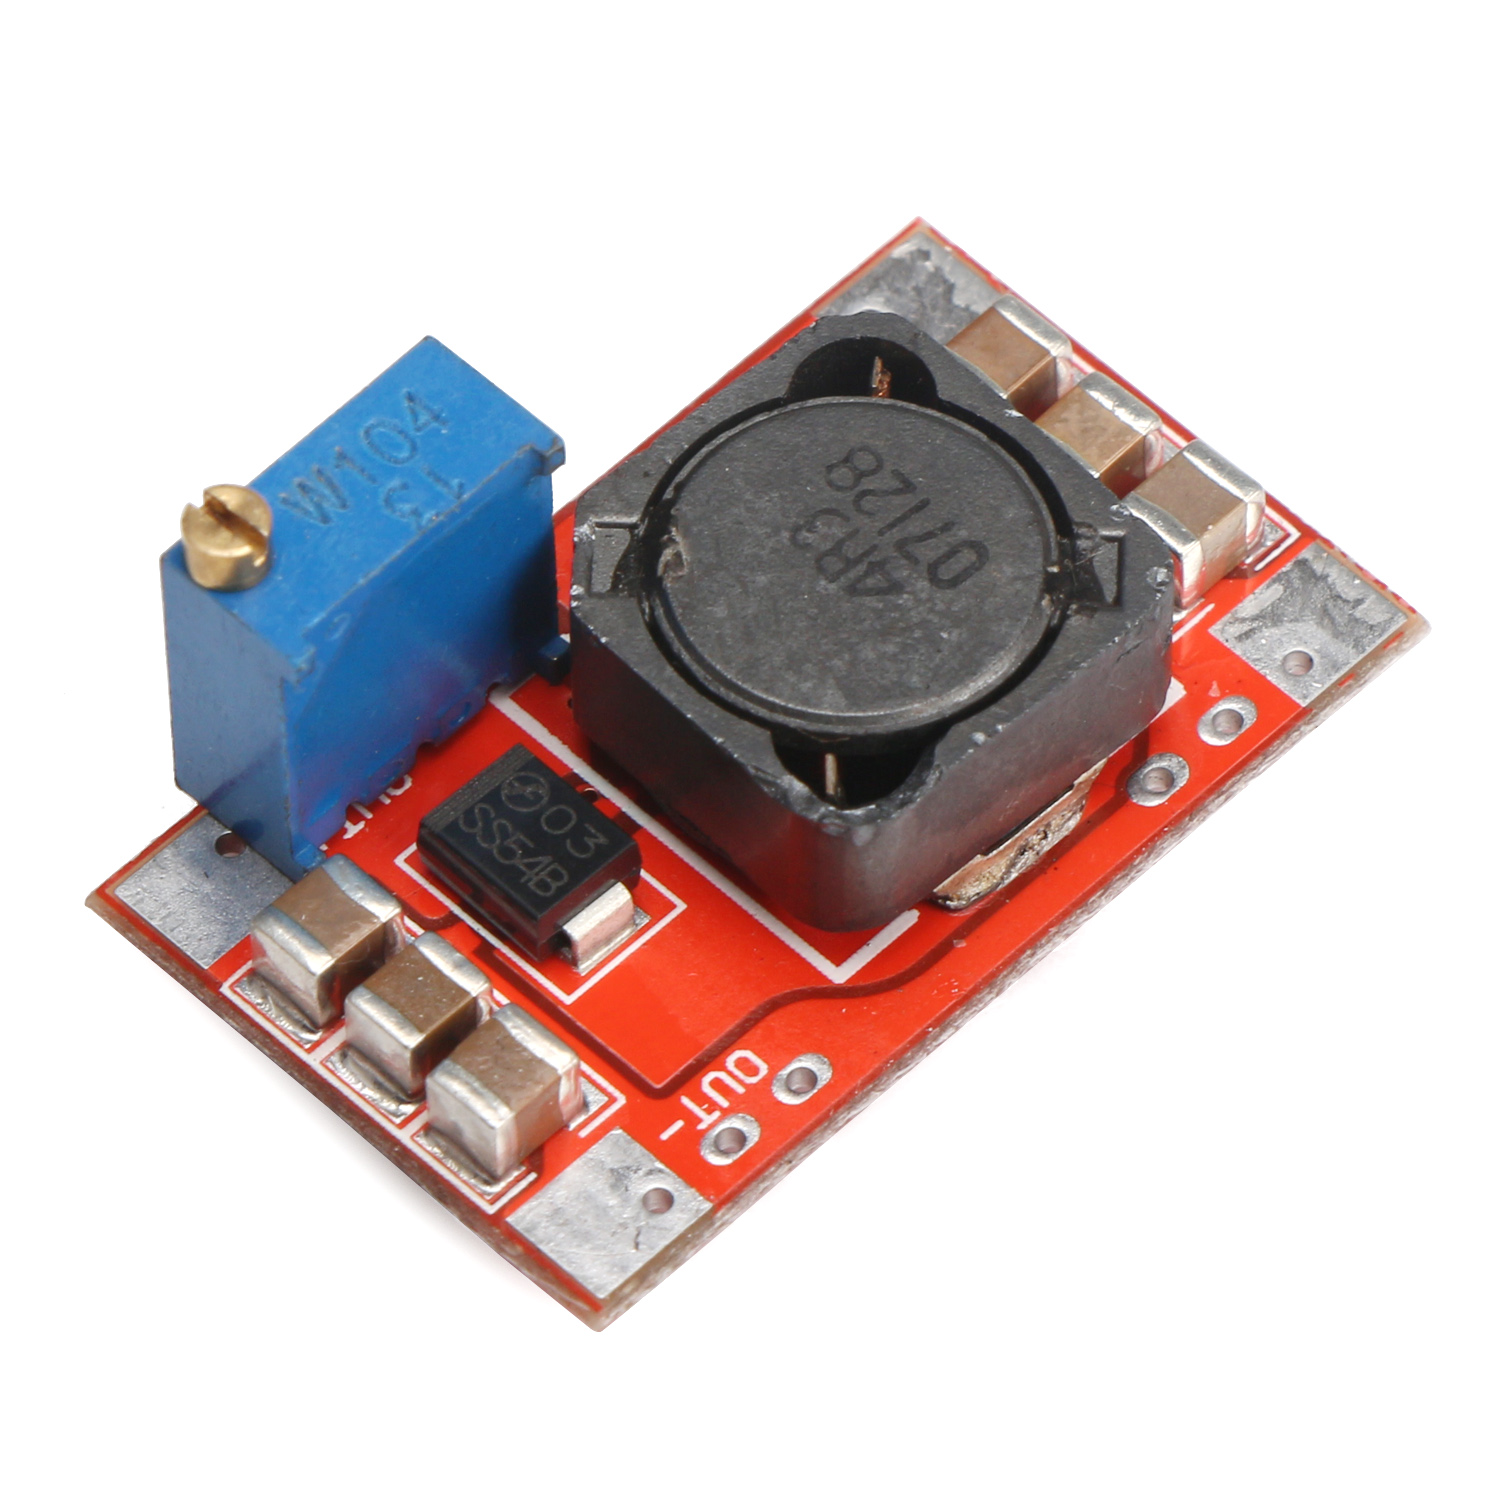 25w Power Adapter Voltage Regulator Dc 2525v To 525v Adjustable Explanation And Circuit Electronic Circuits Supply